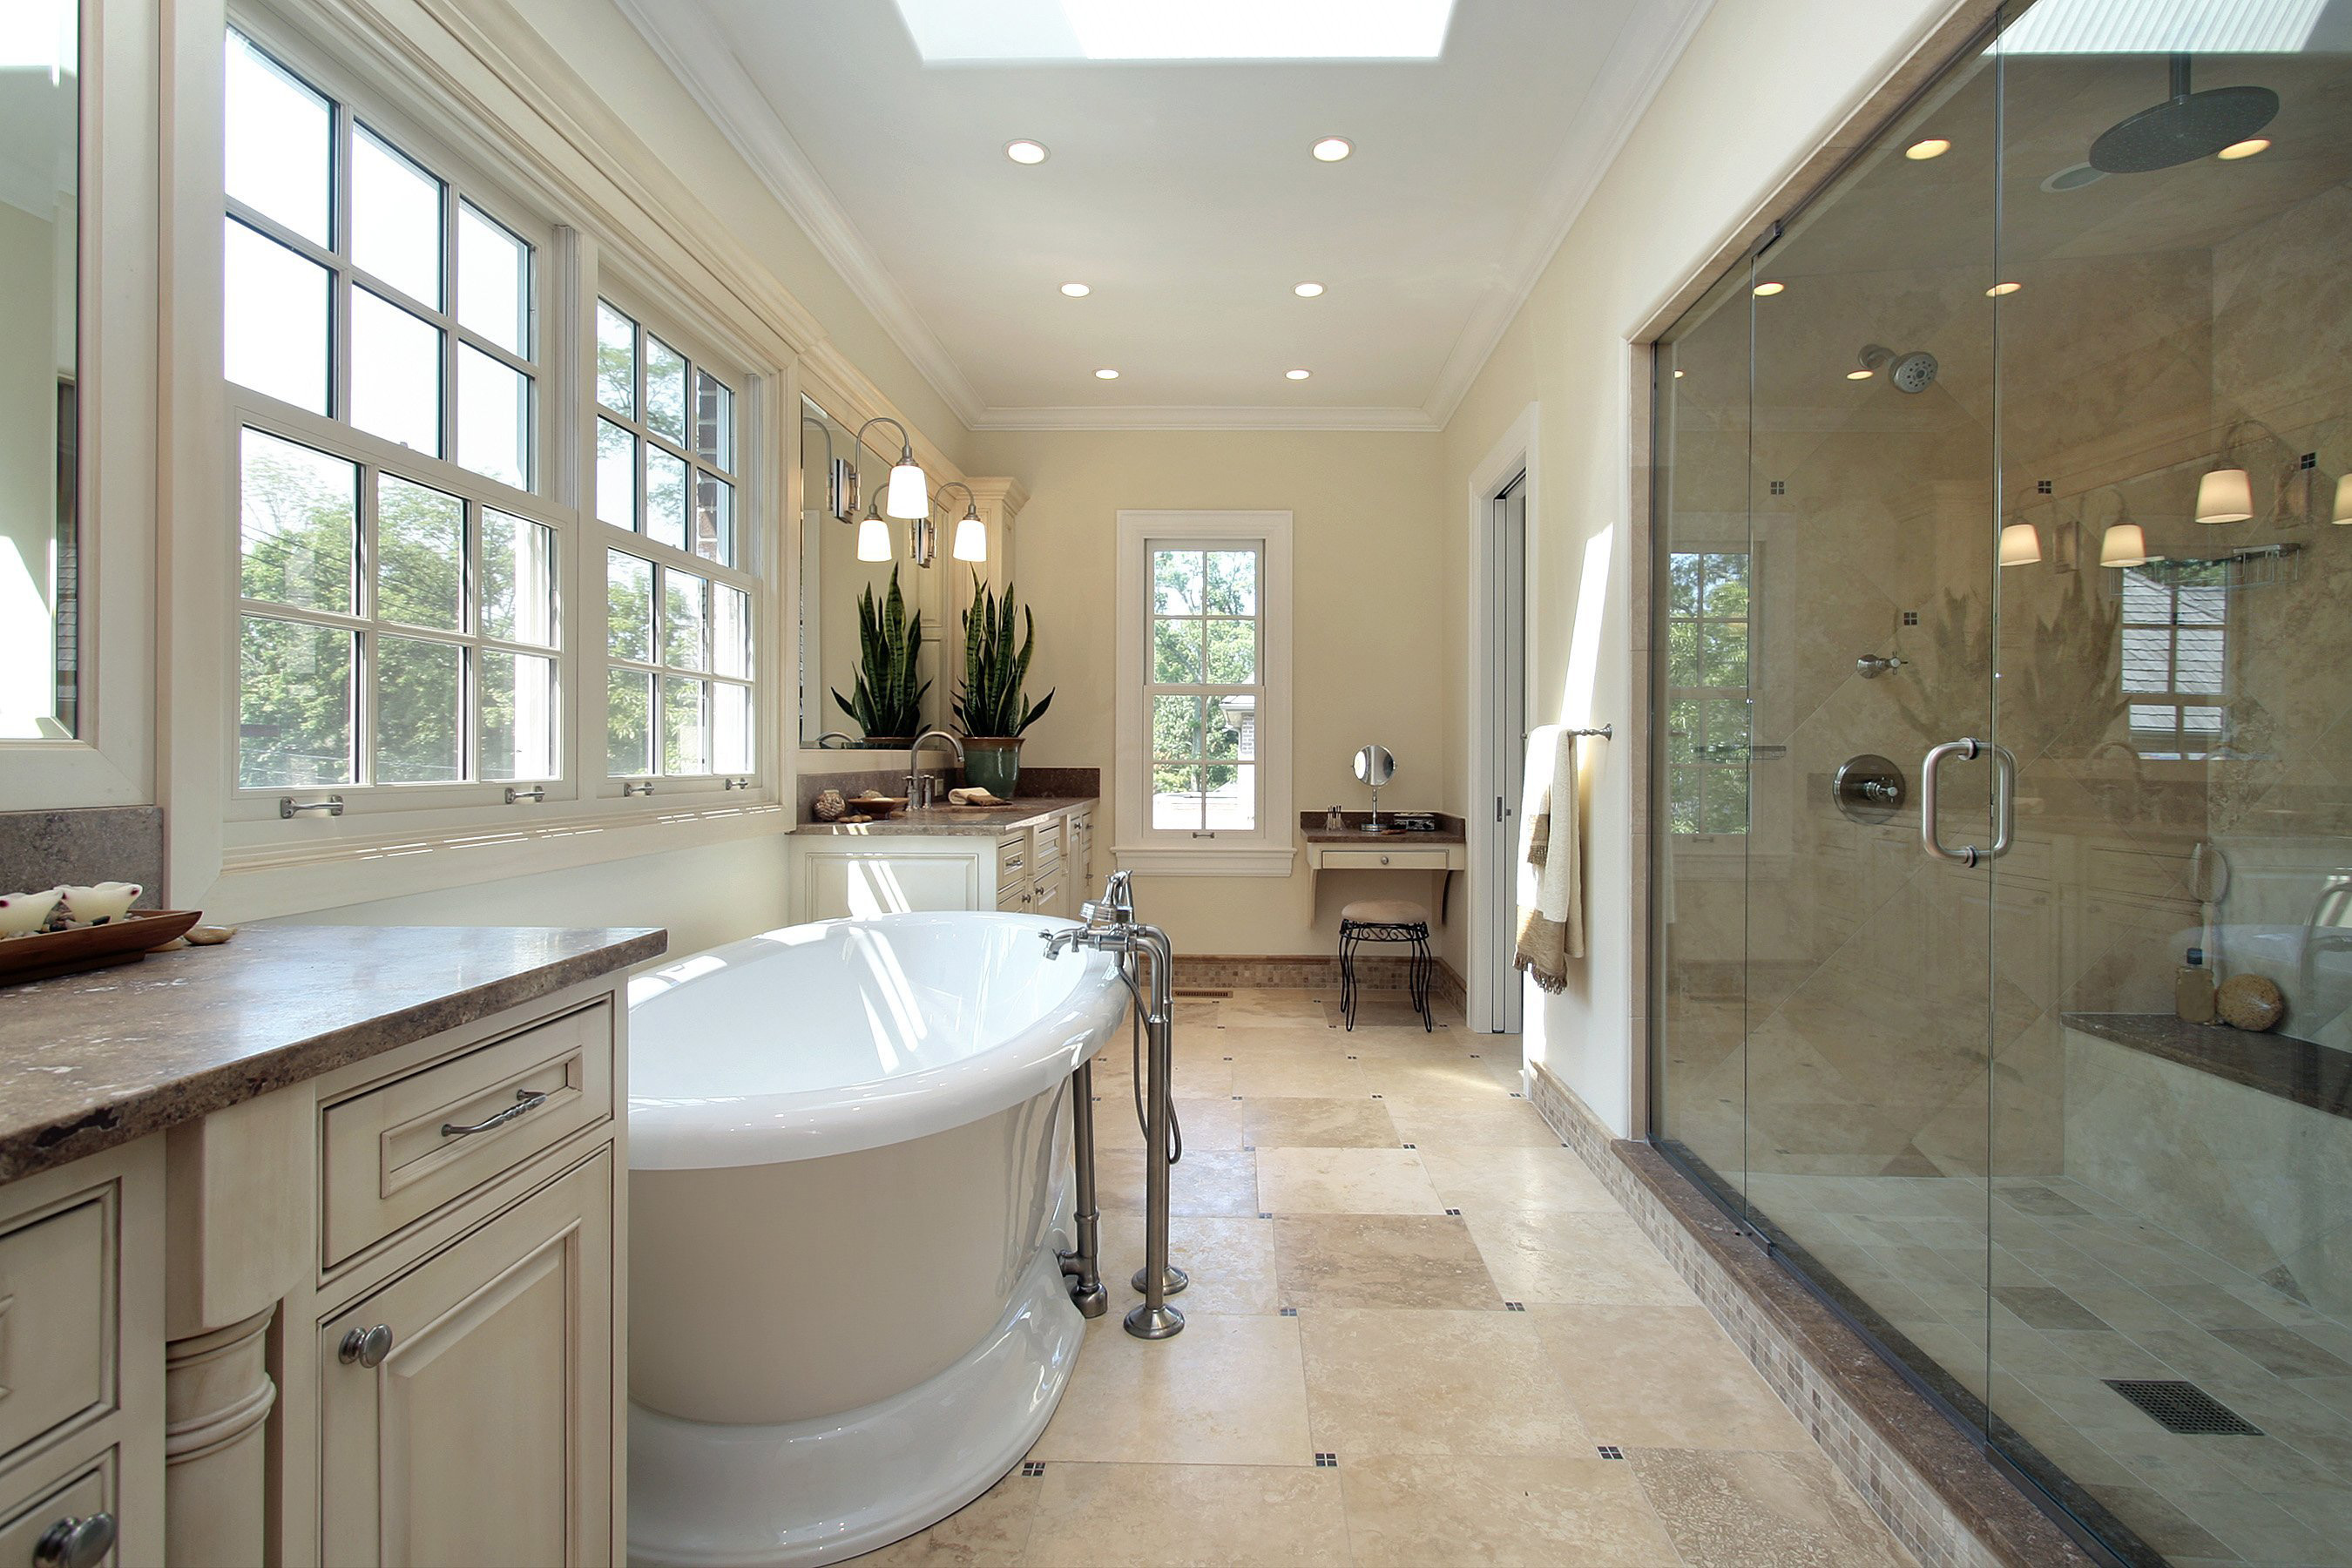 Bathroom Renovation Cost New Zealand how much does a kitchen remodel cost. how much does it cost to